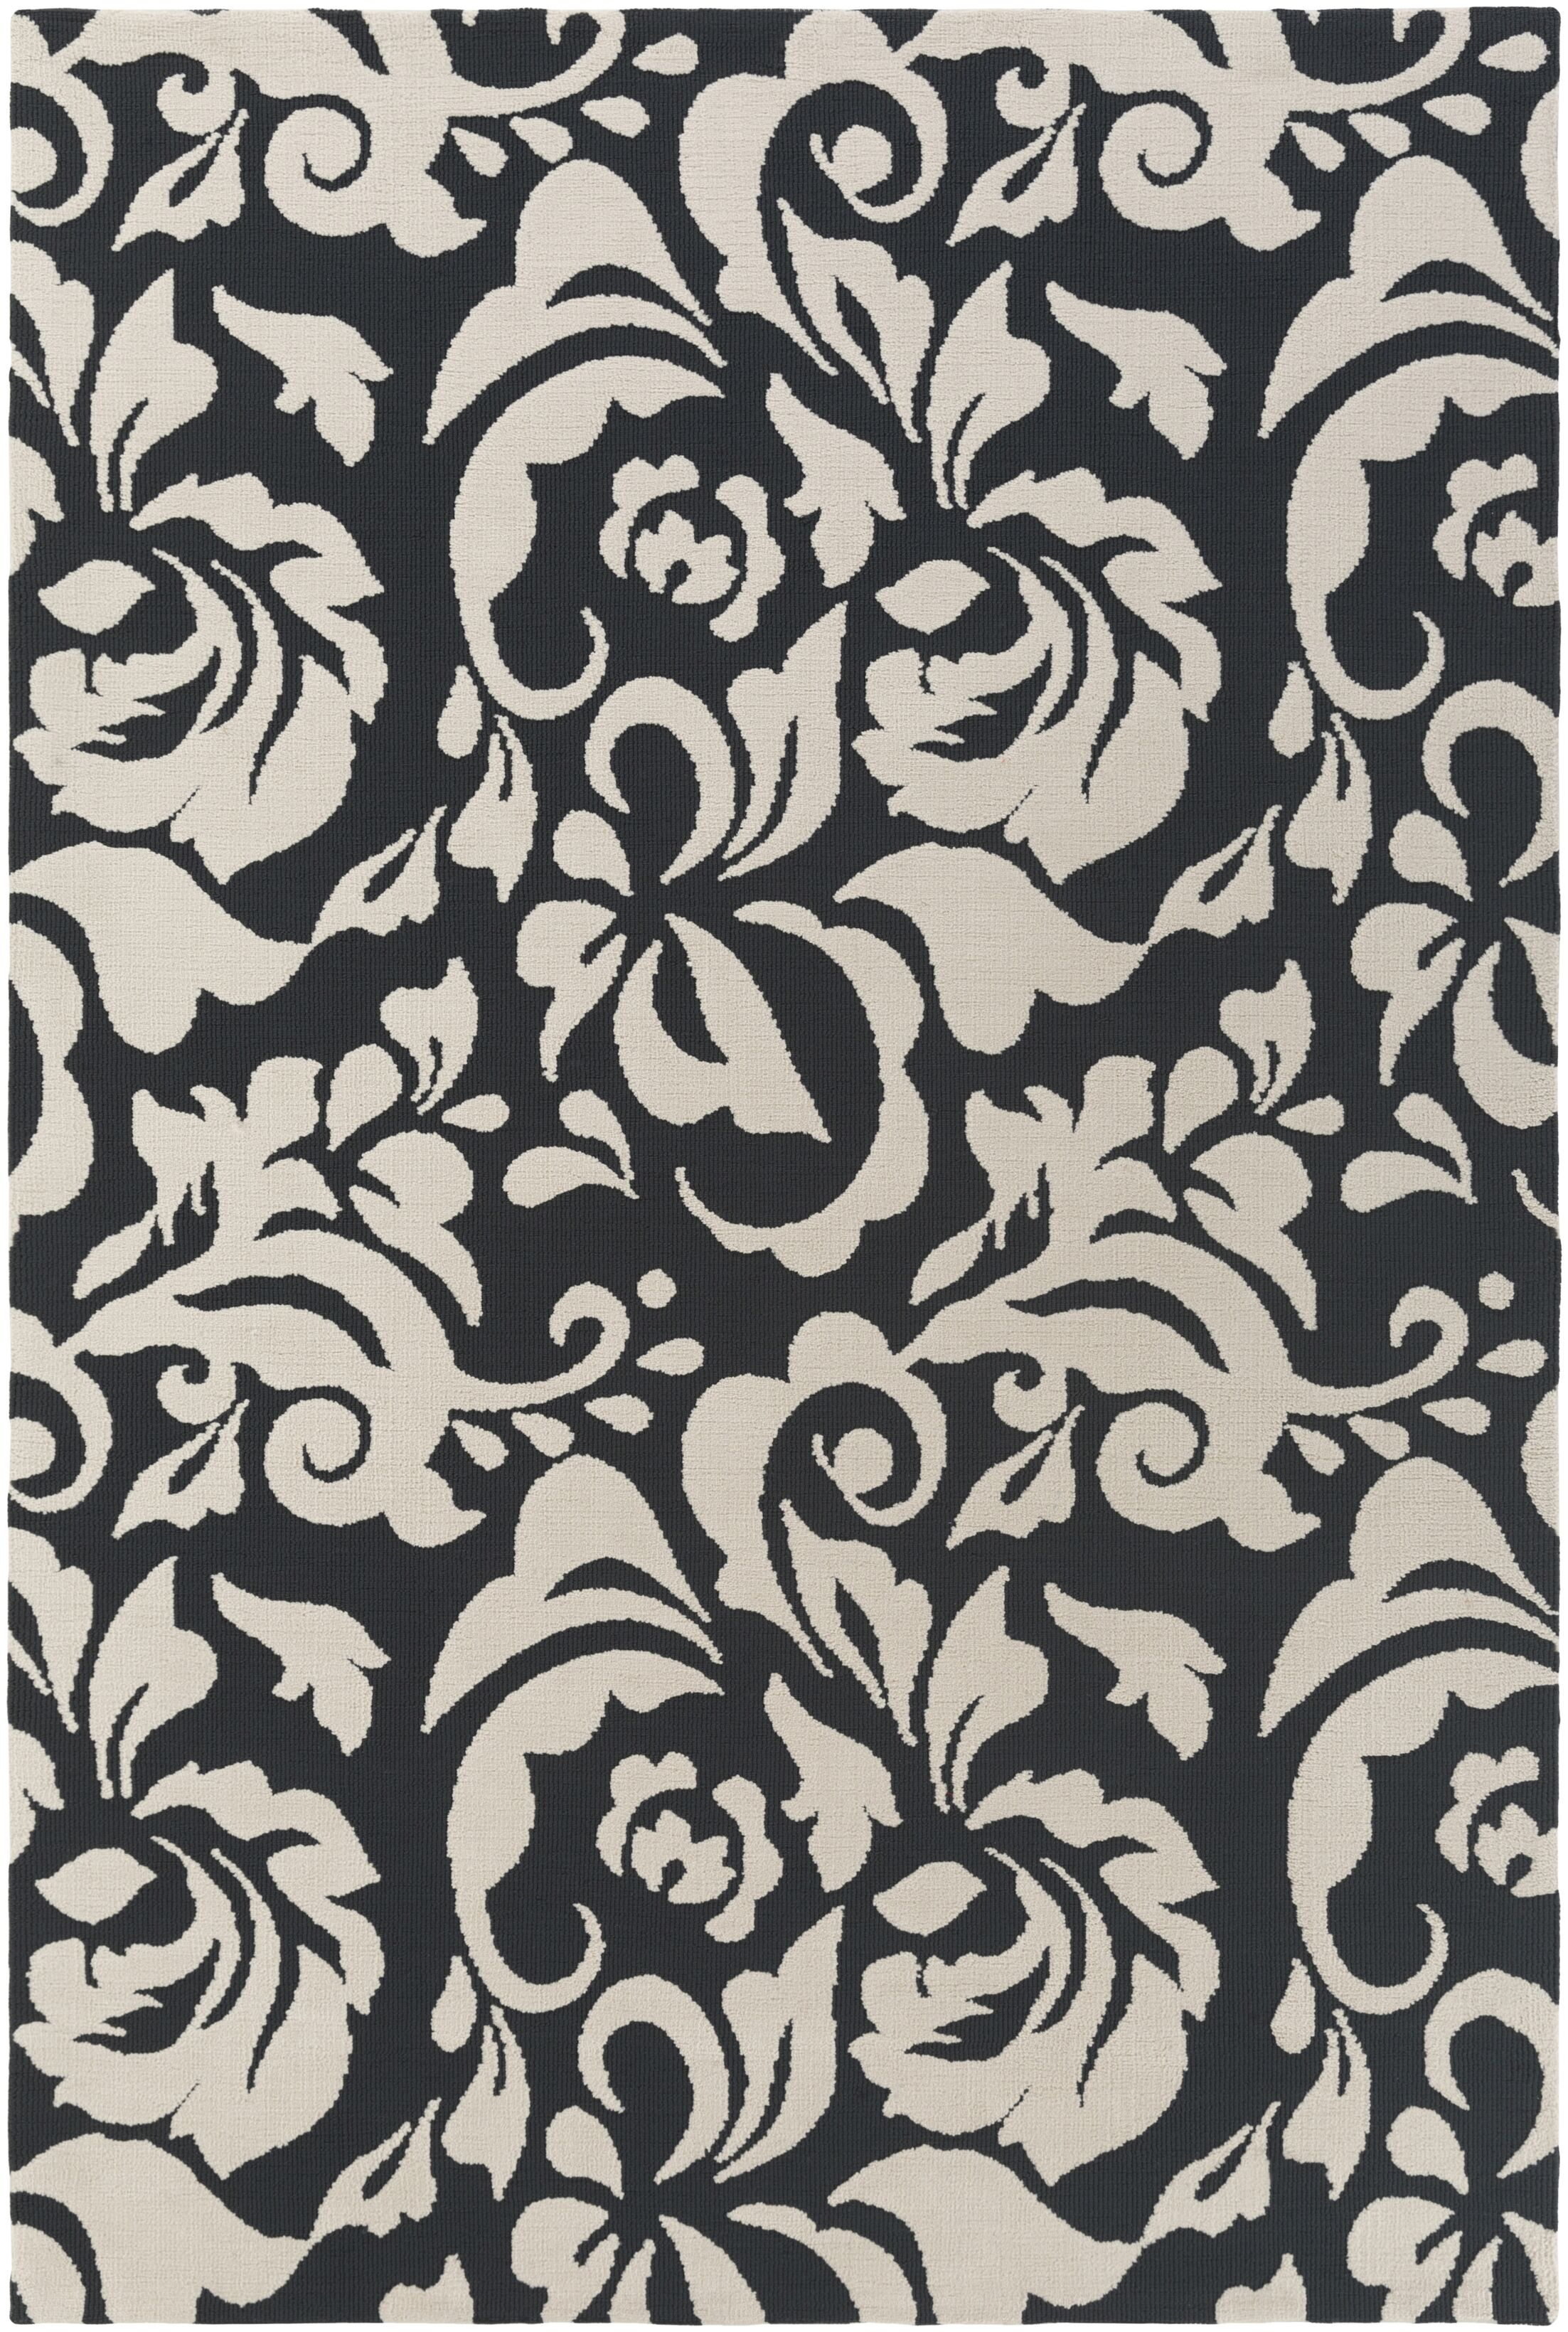 Ducote Black/Ivory Area Rug Rug Size: Rectangle 7'6